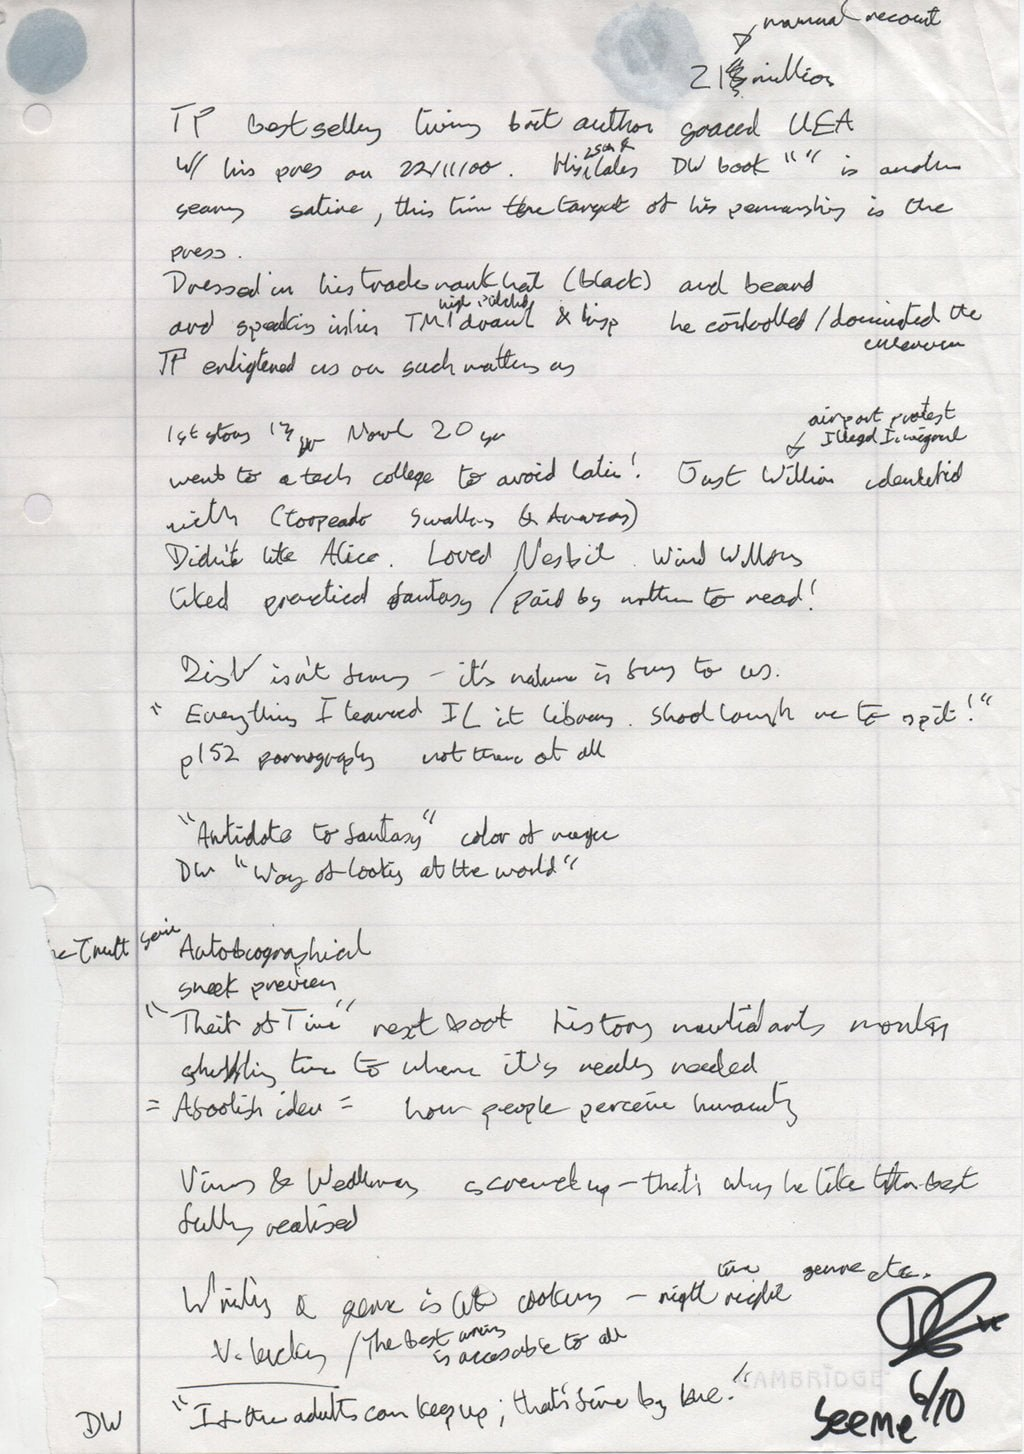 Hand scribbled notes from an interview with Terry Pratchett.